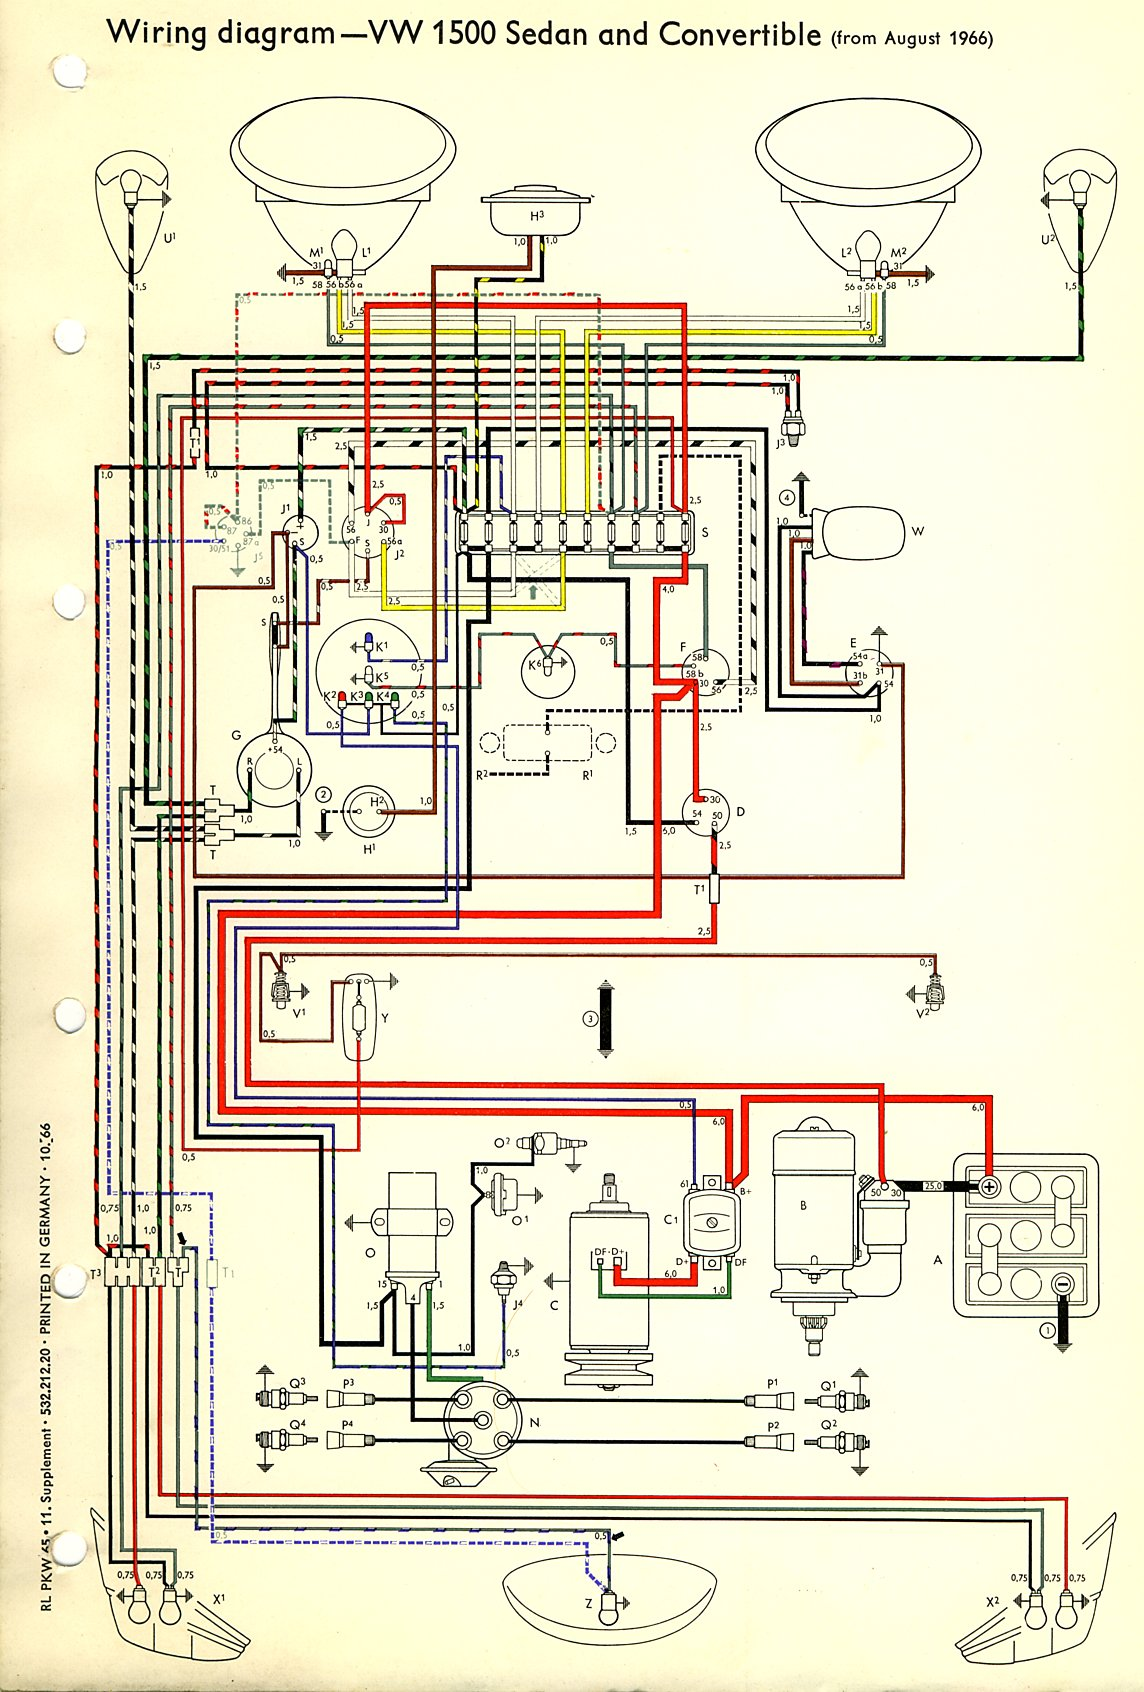 bug_67 1967 beetle wiring diagram thegoldenbug com VW Bug Ignition Wiring at fashall.co